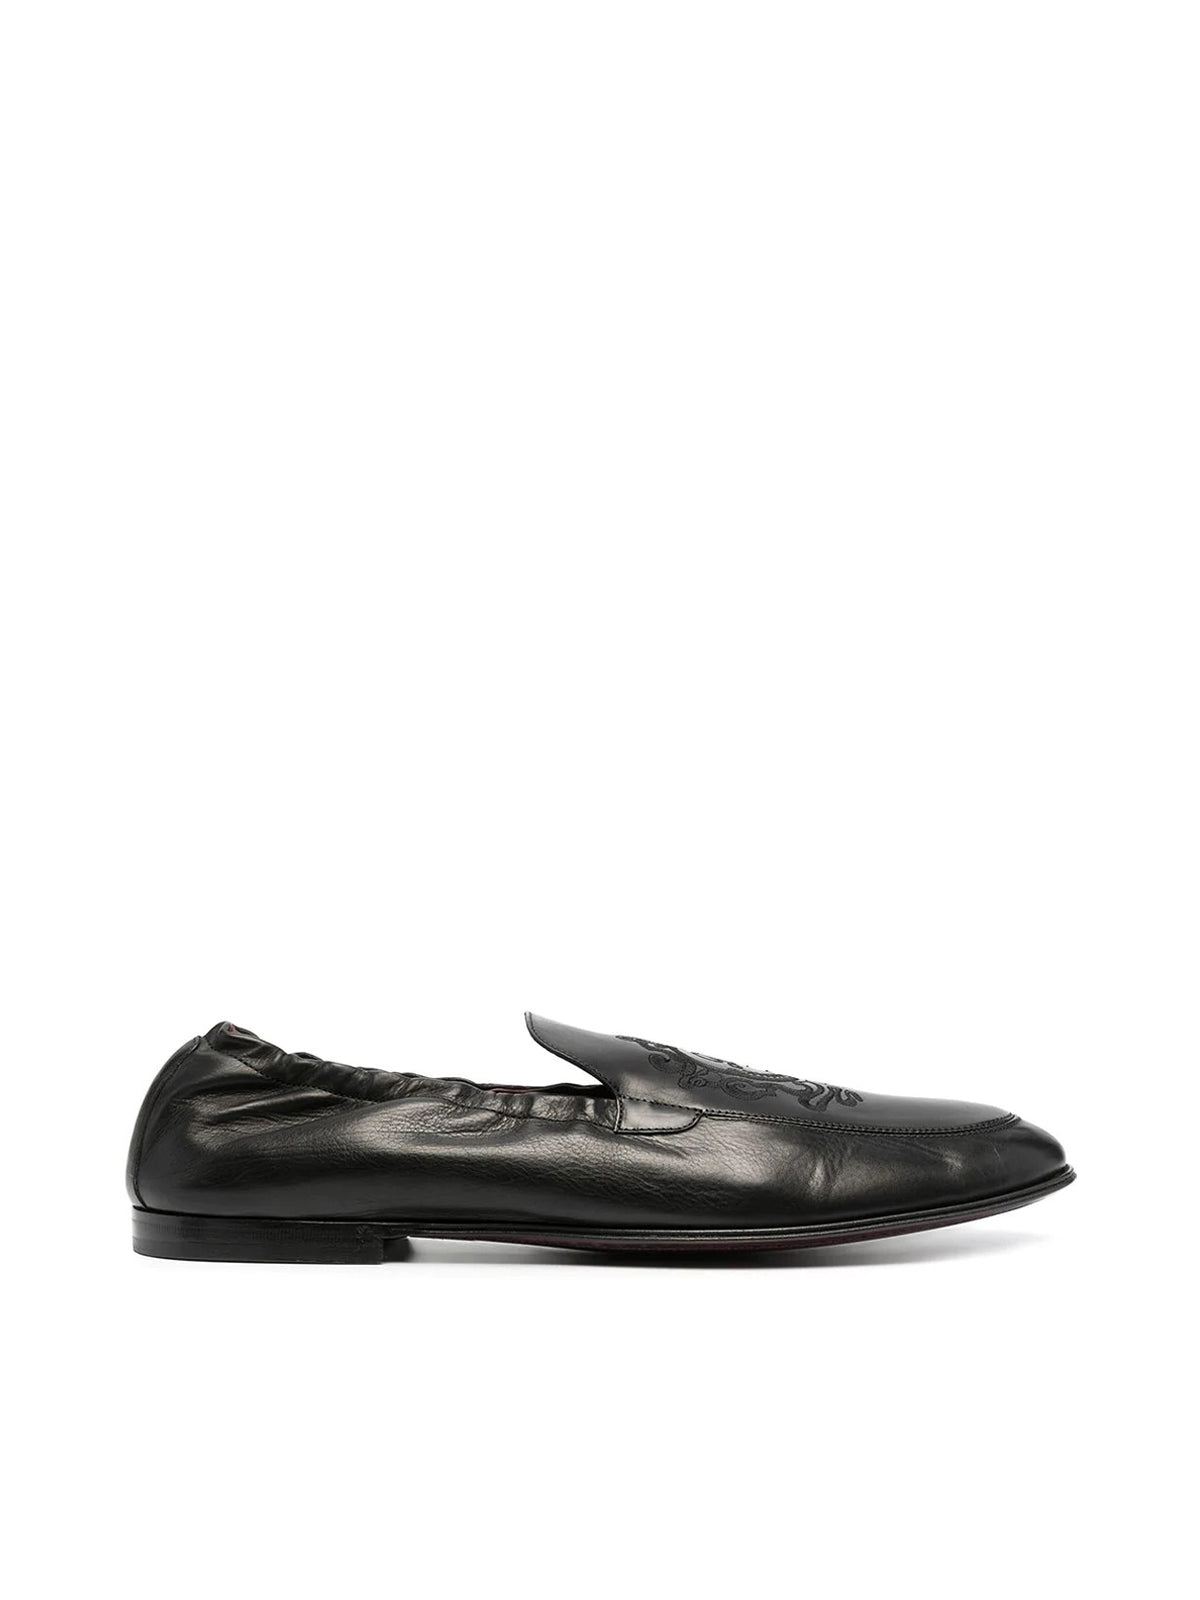 Dolce & Gabbana Loafers LOGO-EMBROIDERED LEATHER LOAFERS